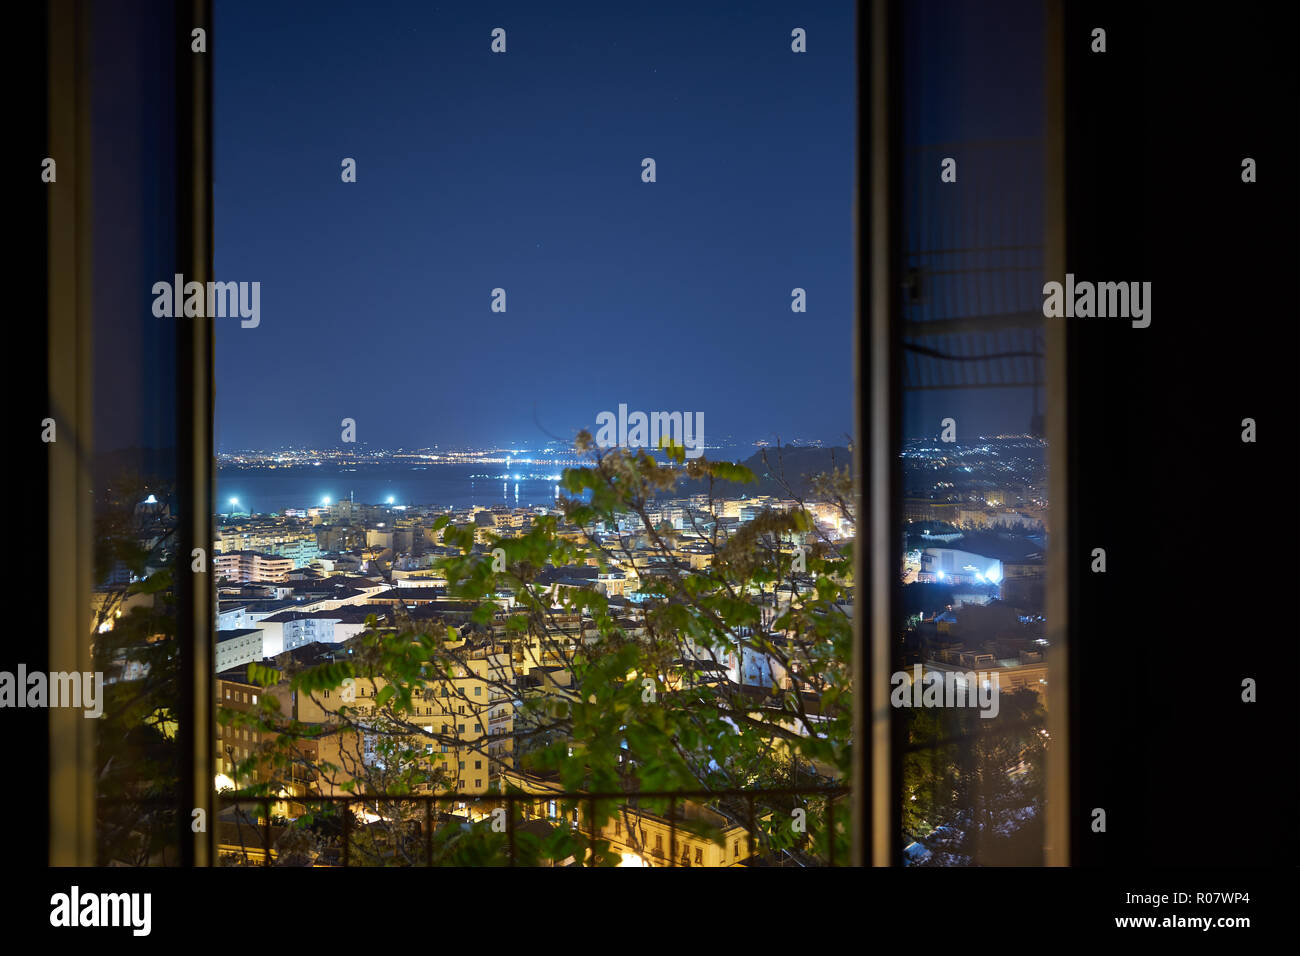 nightscape panorama from an open window - Stock Image